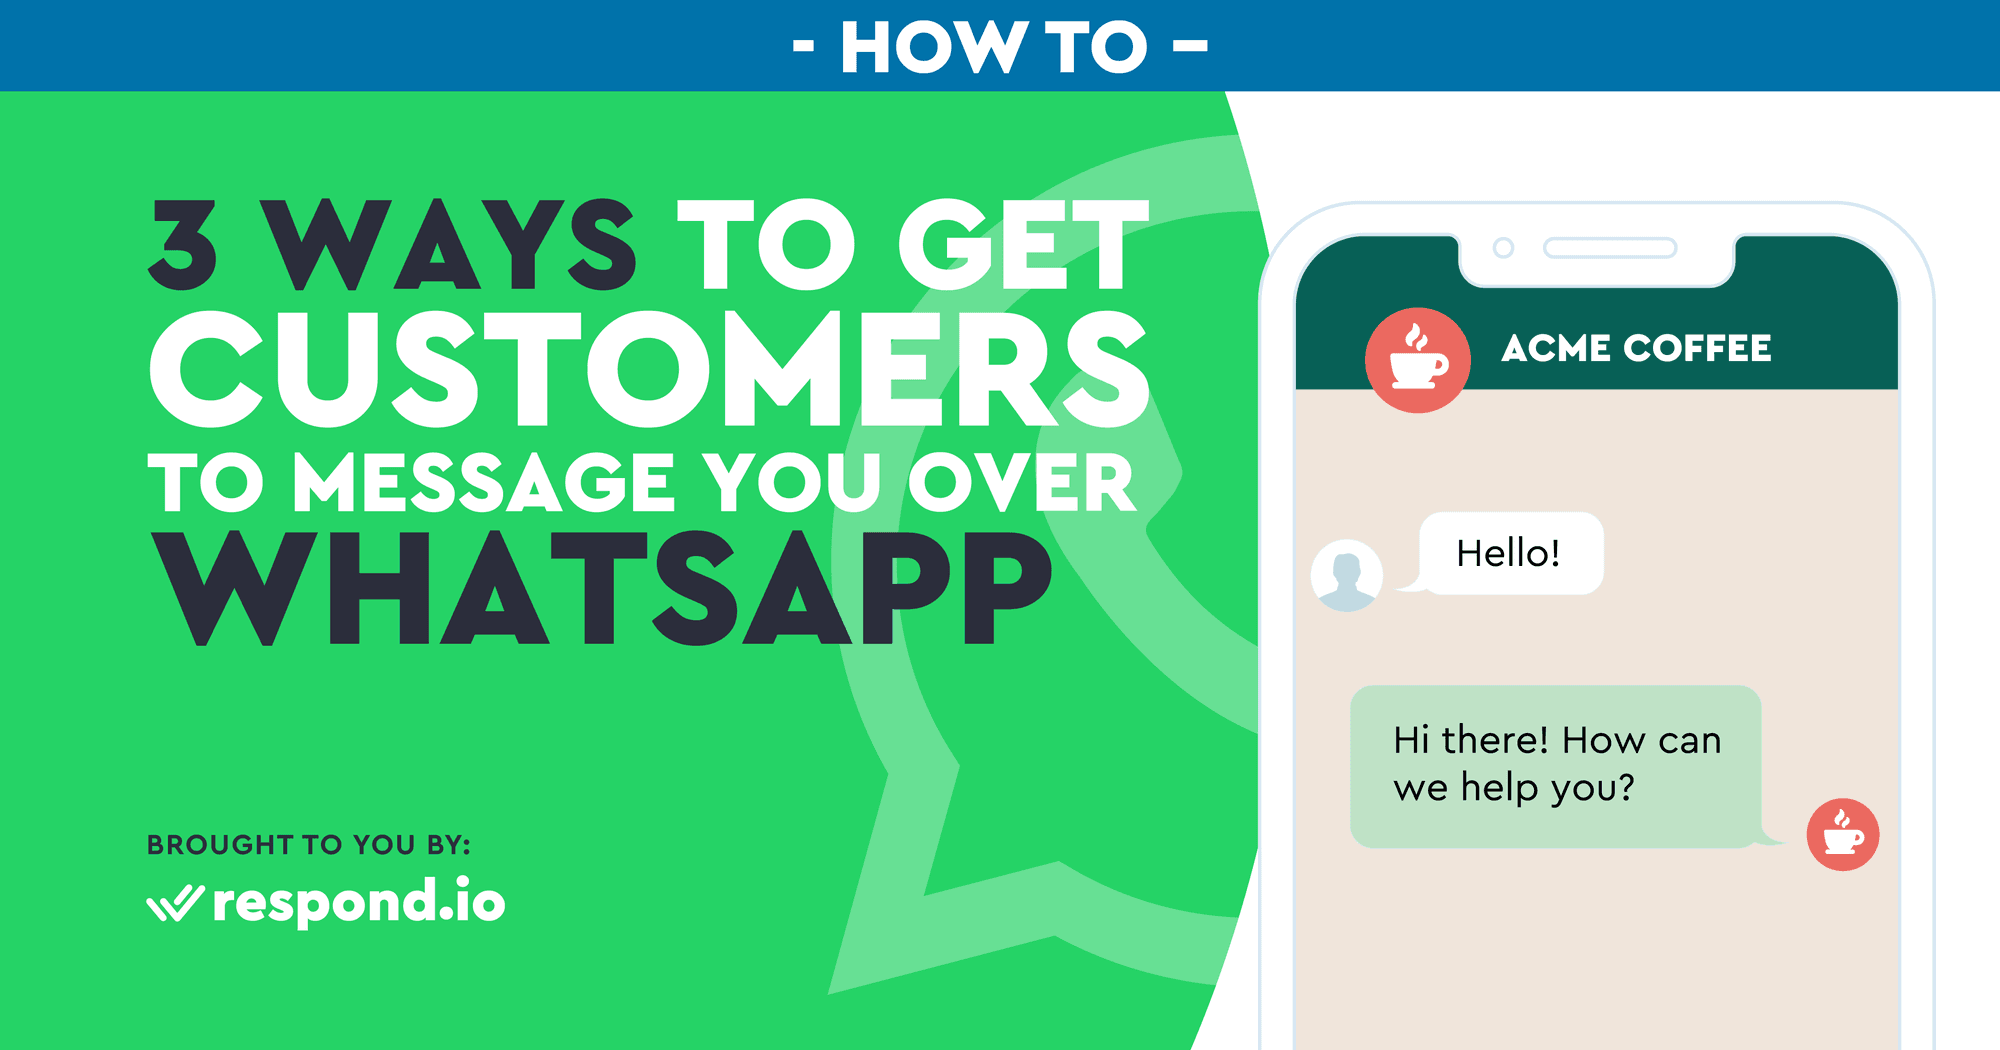 3 Ways to Get Customers To Message You Over WhatsApp